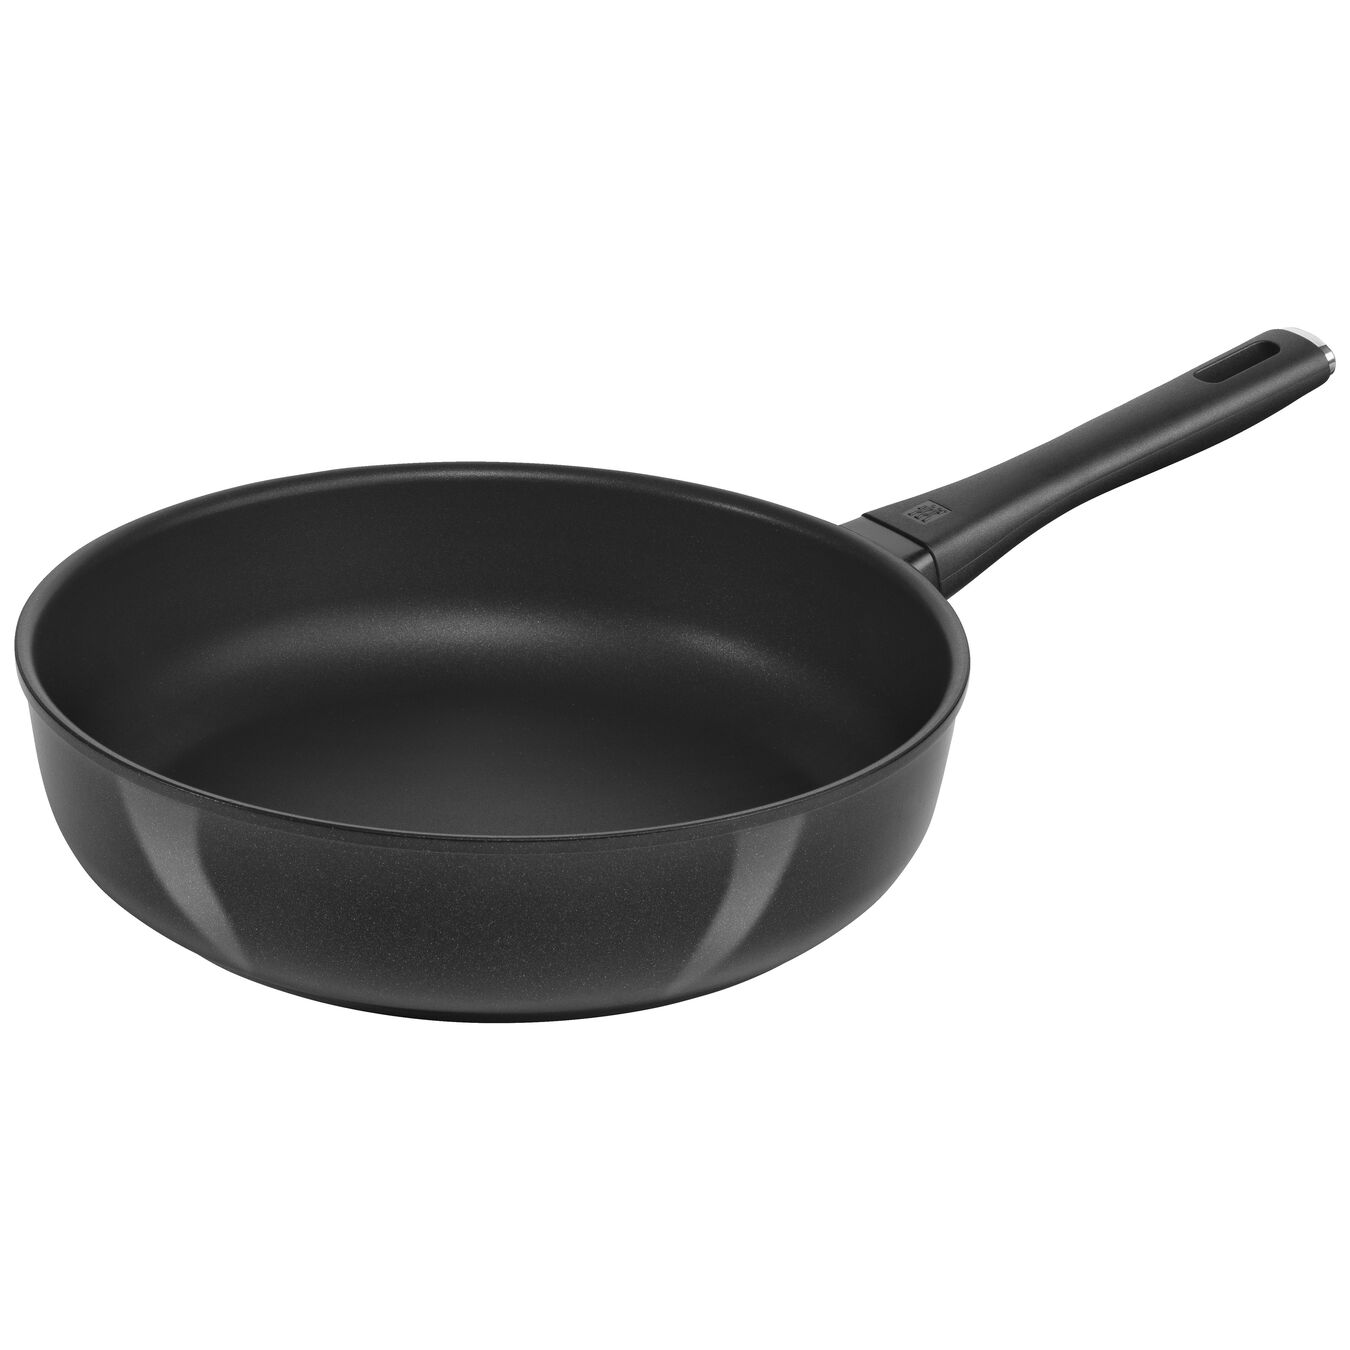 28 cm / 11 inch Frying pan high-sided,,large 1